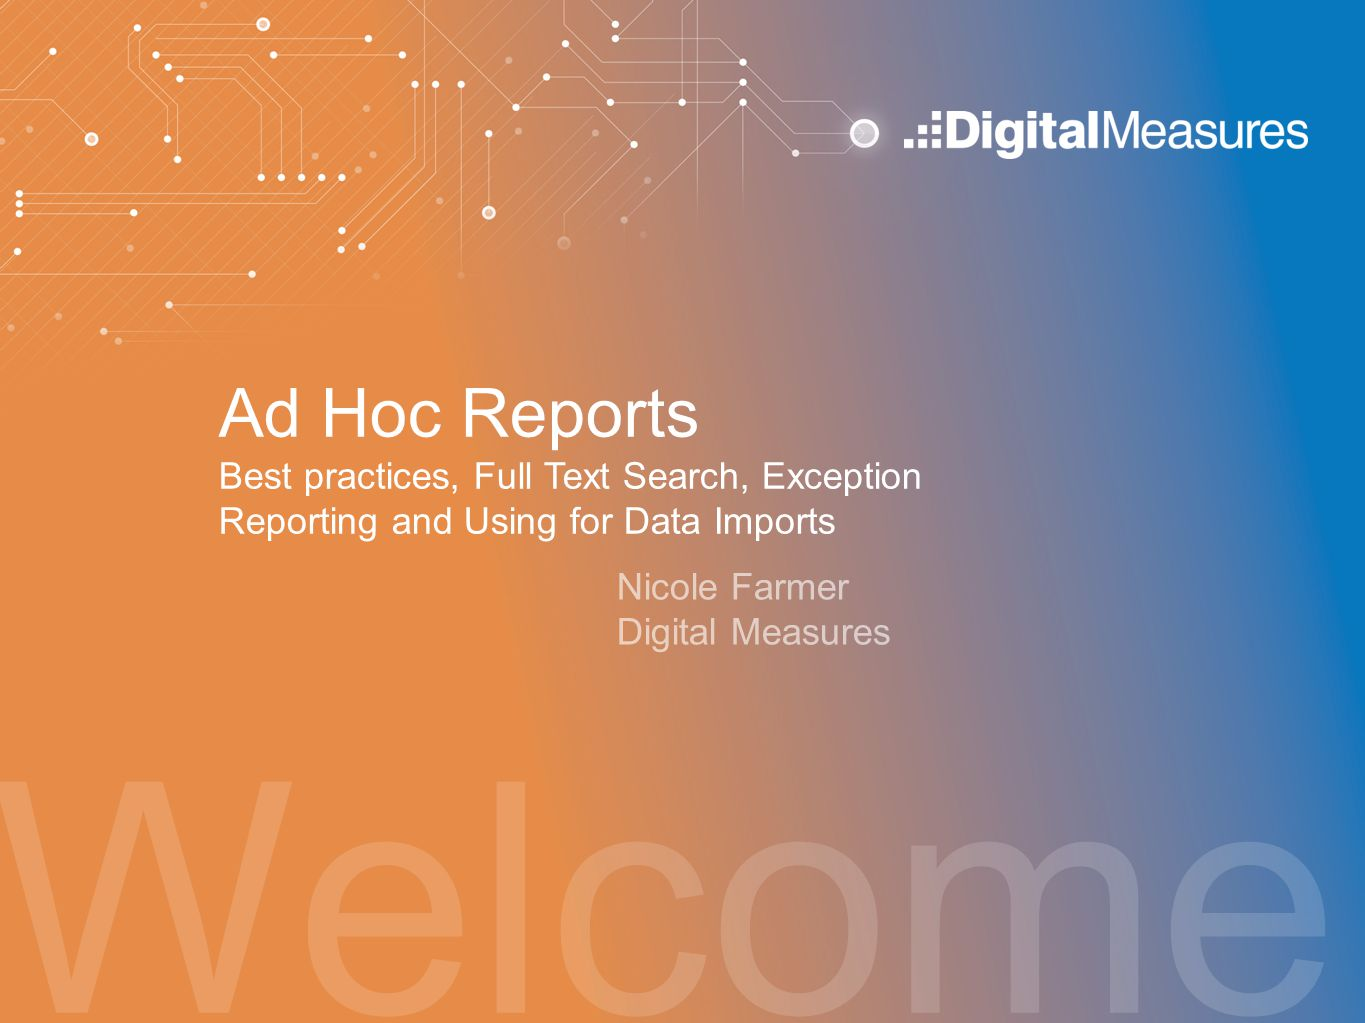 Welcome Ad Hoc Reports Best practices, Full Text Search, Exception Reporting and Using for Data Imports Nicole Farmer Digital Measures